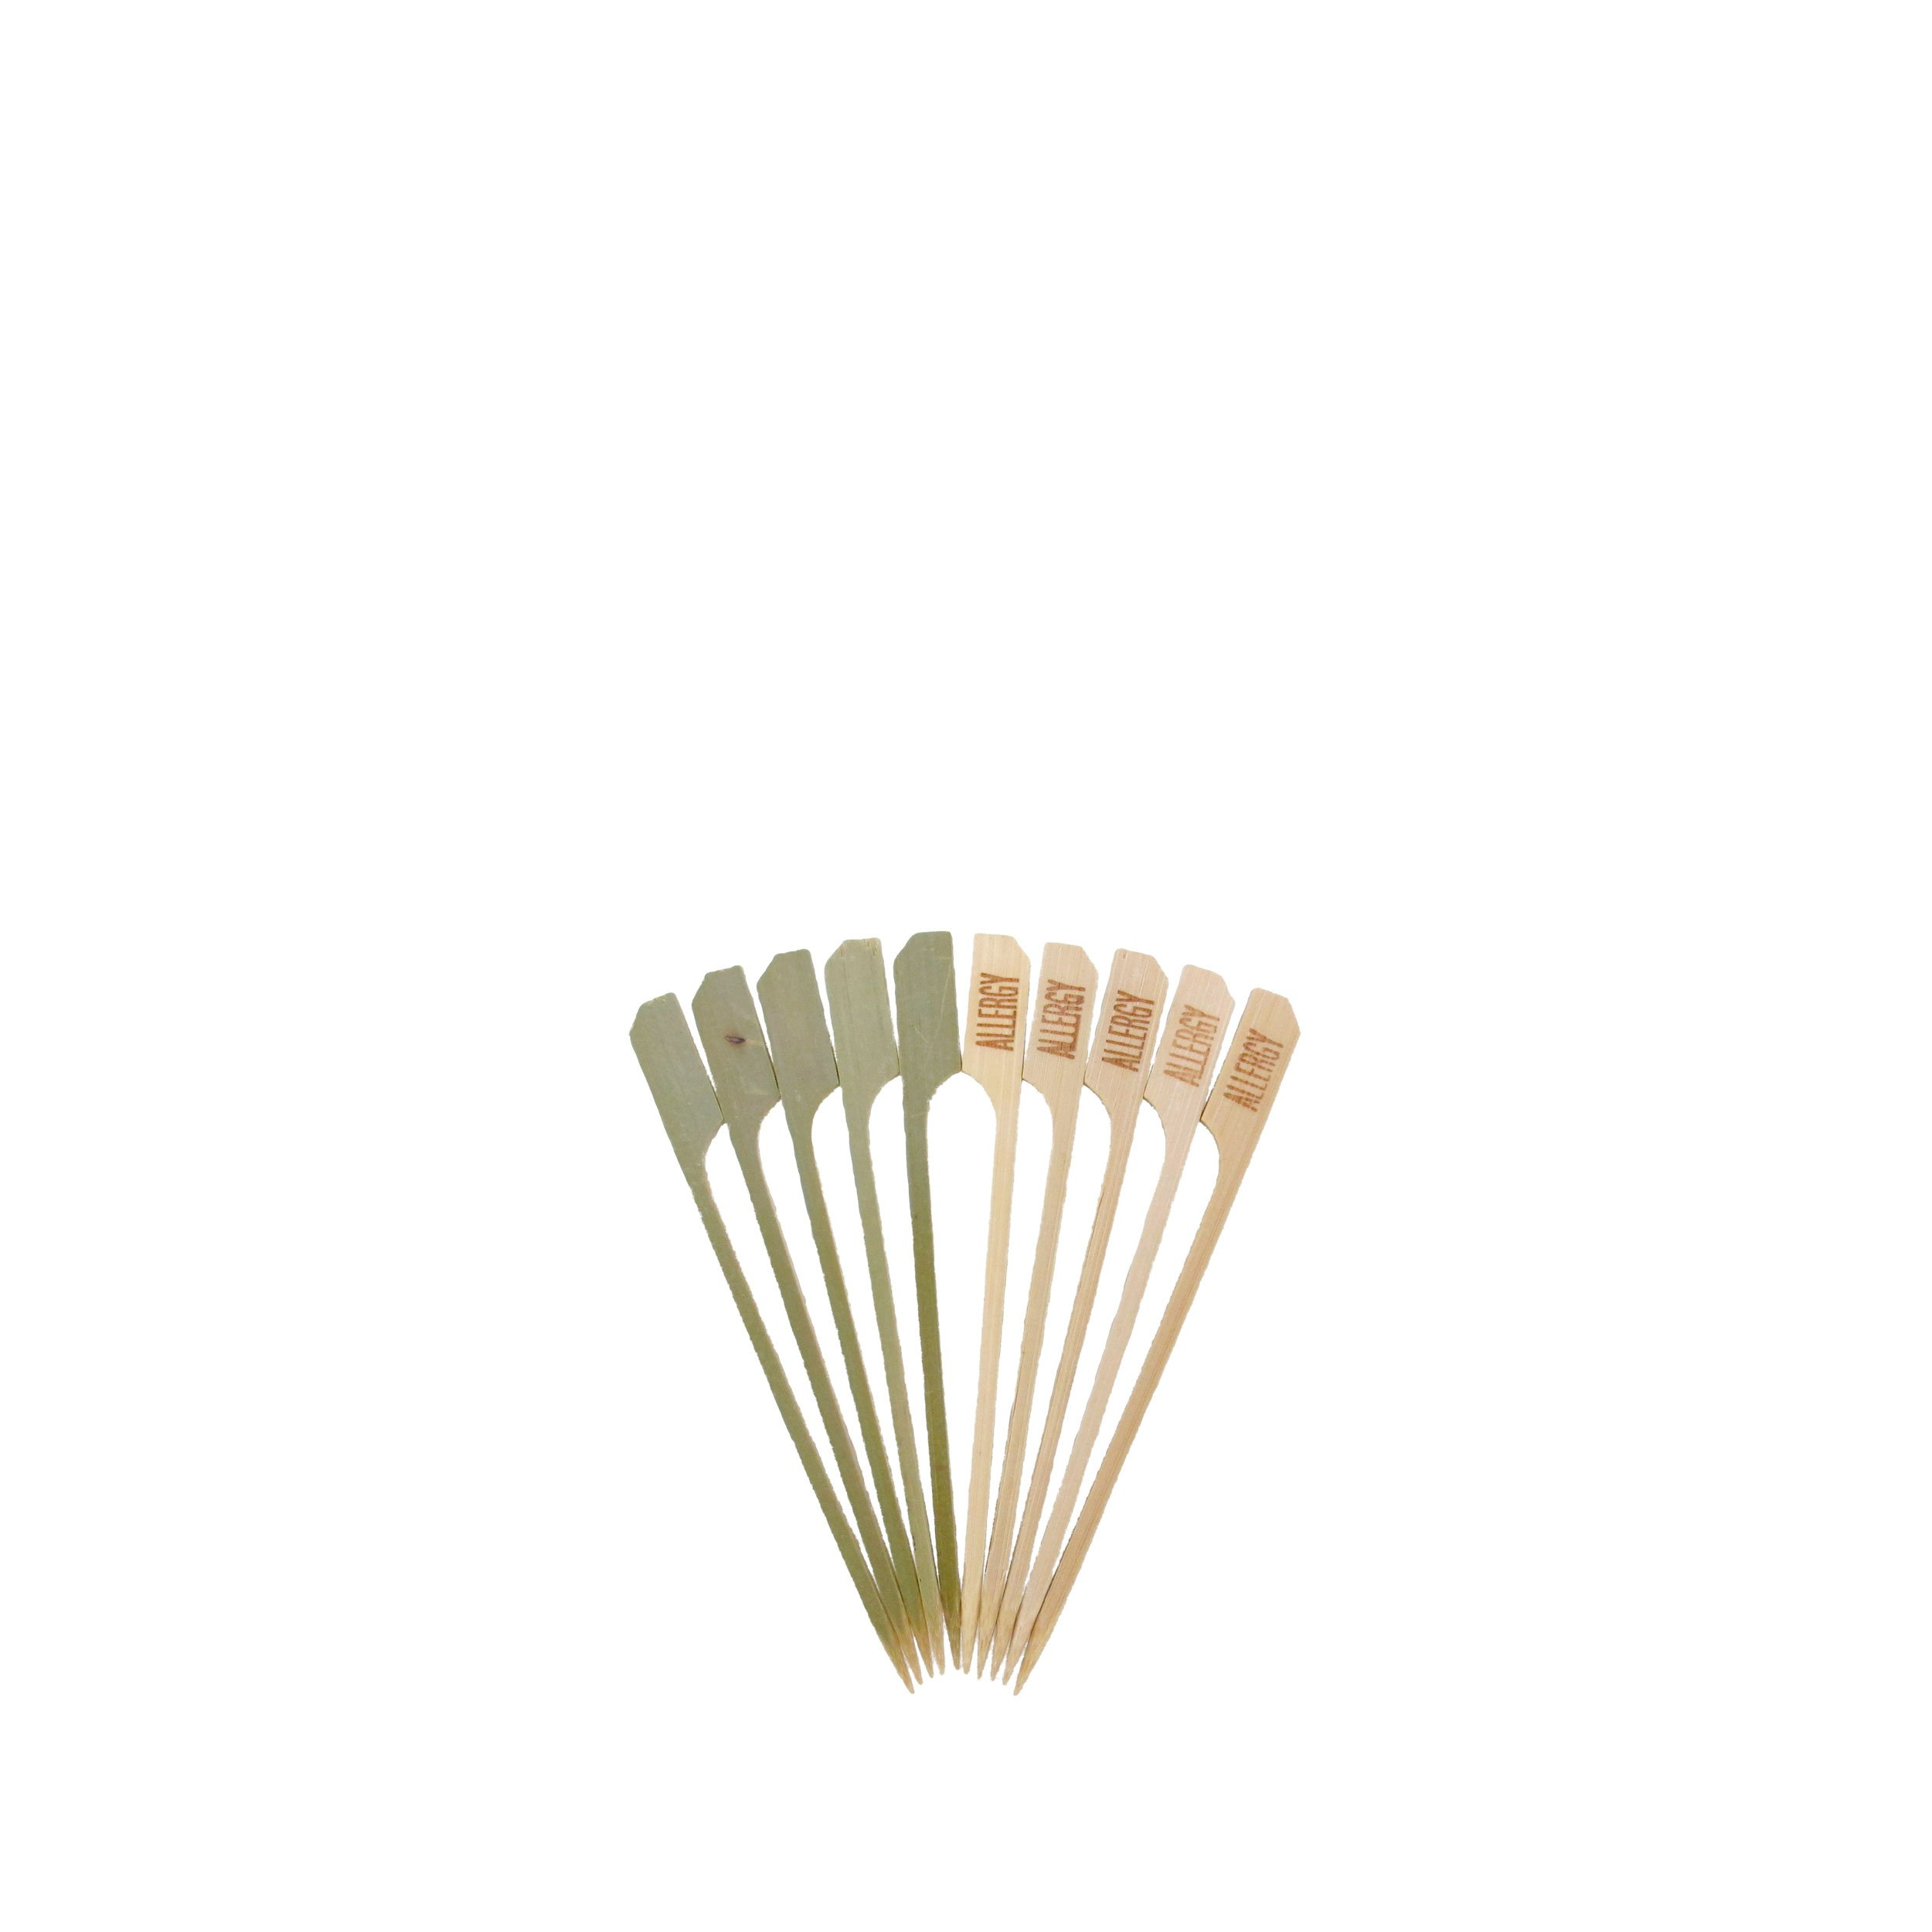 BambooMN 4.7'' Food Allergy Marking Natural Bamboo Paddle Picks Sticks for Catered Events, Holiday's, Restaurants or Buffets Party Supplies, 300 Pieces